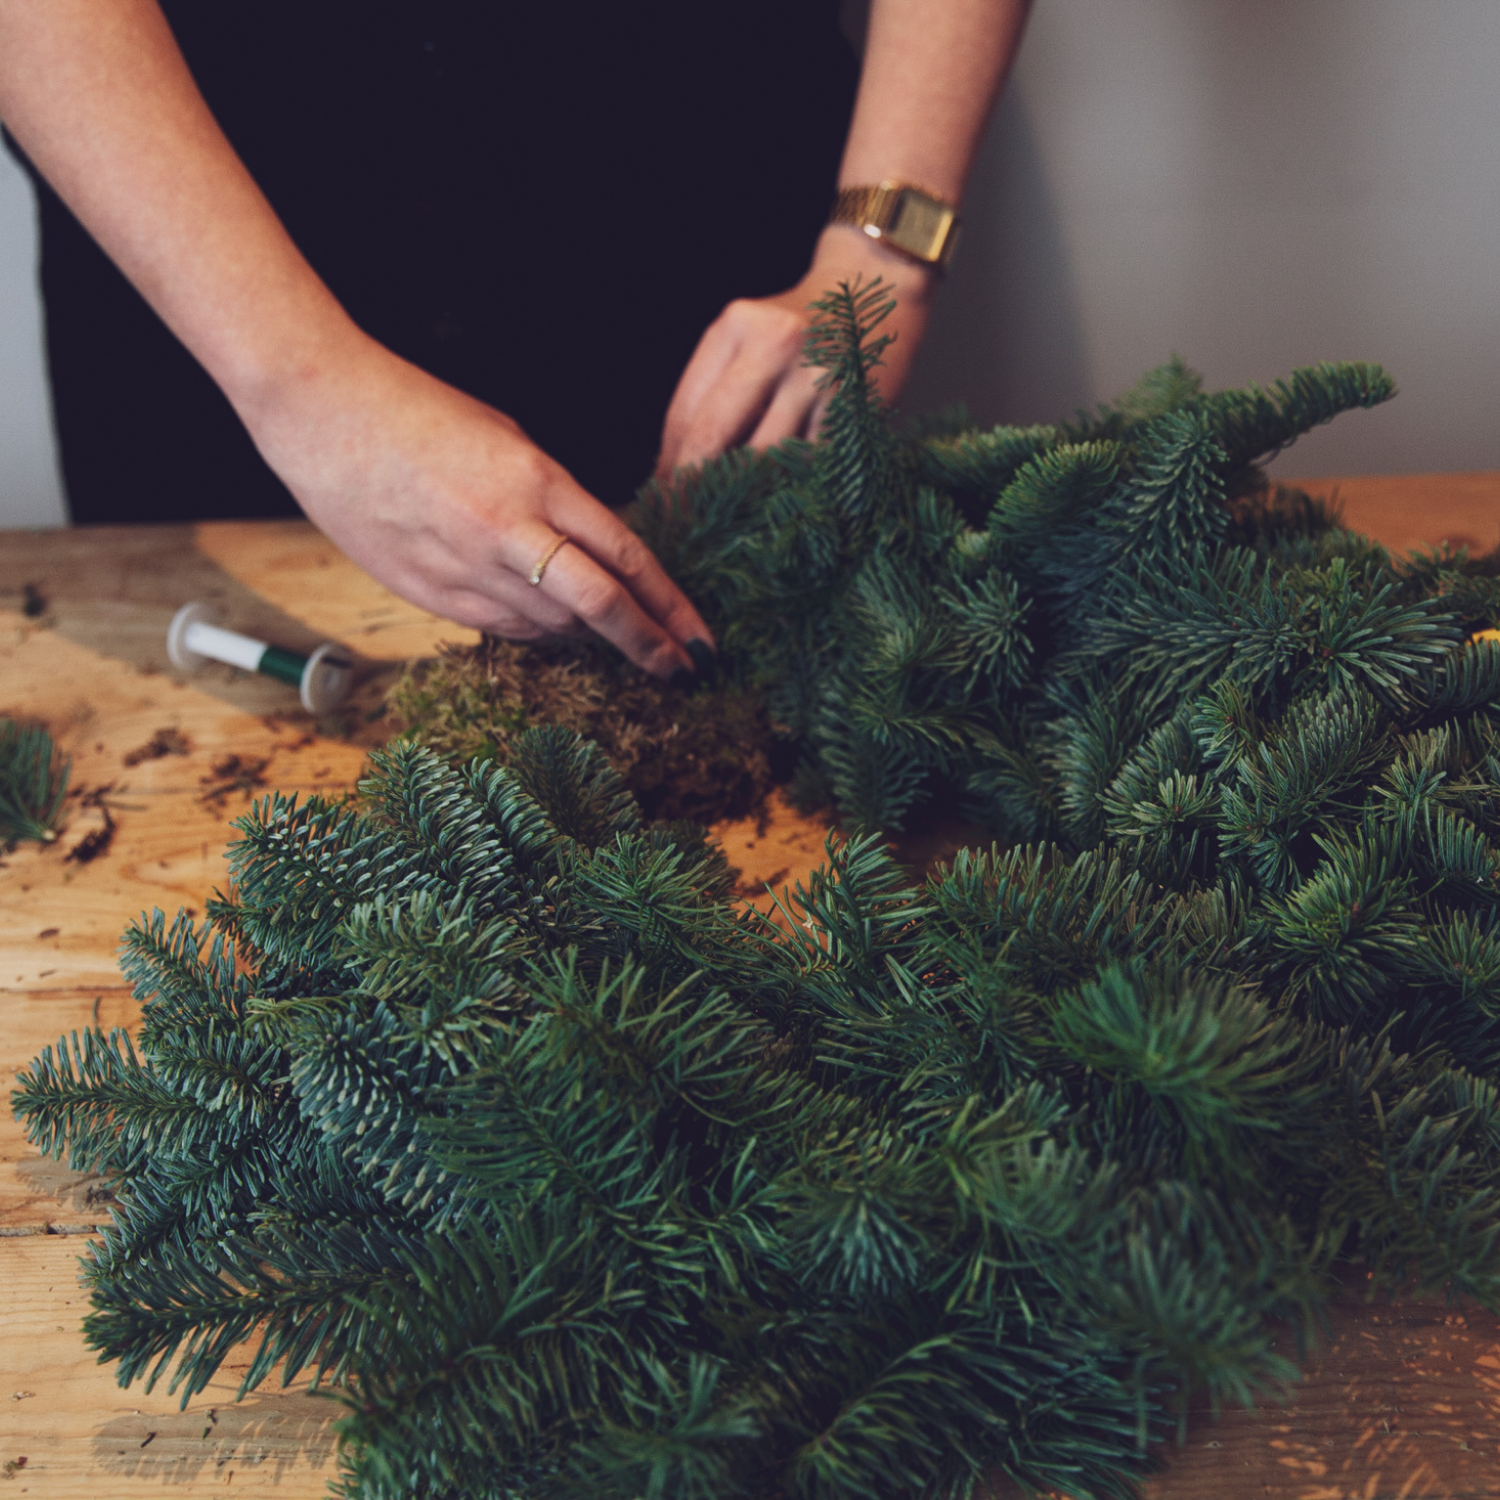 online wreath making workshops florist creating wreath